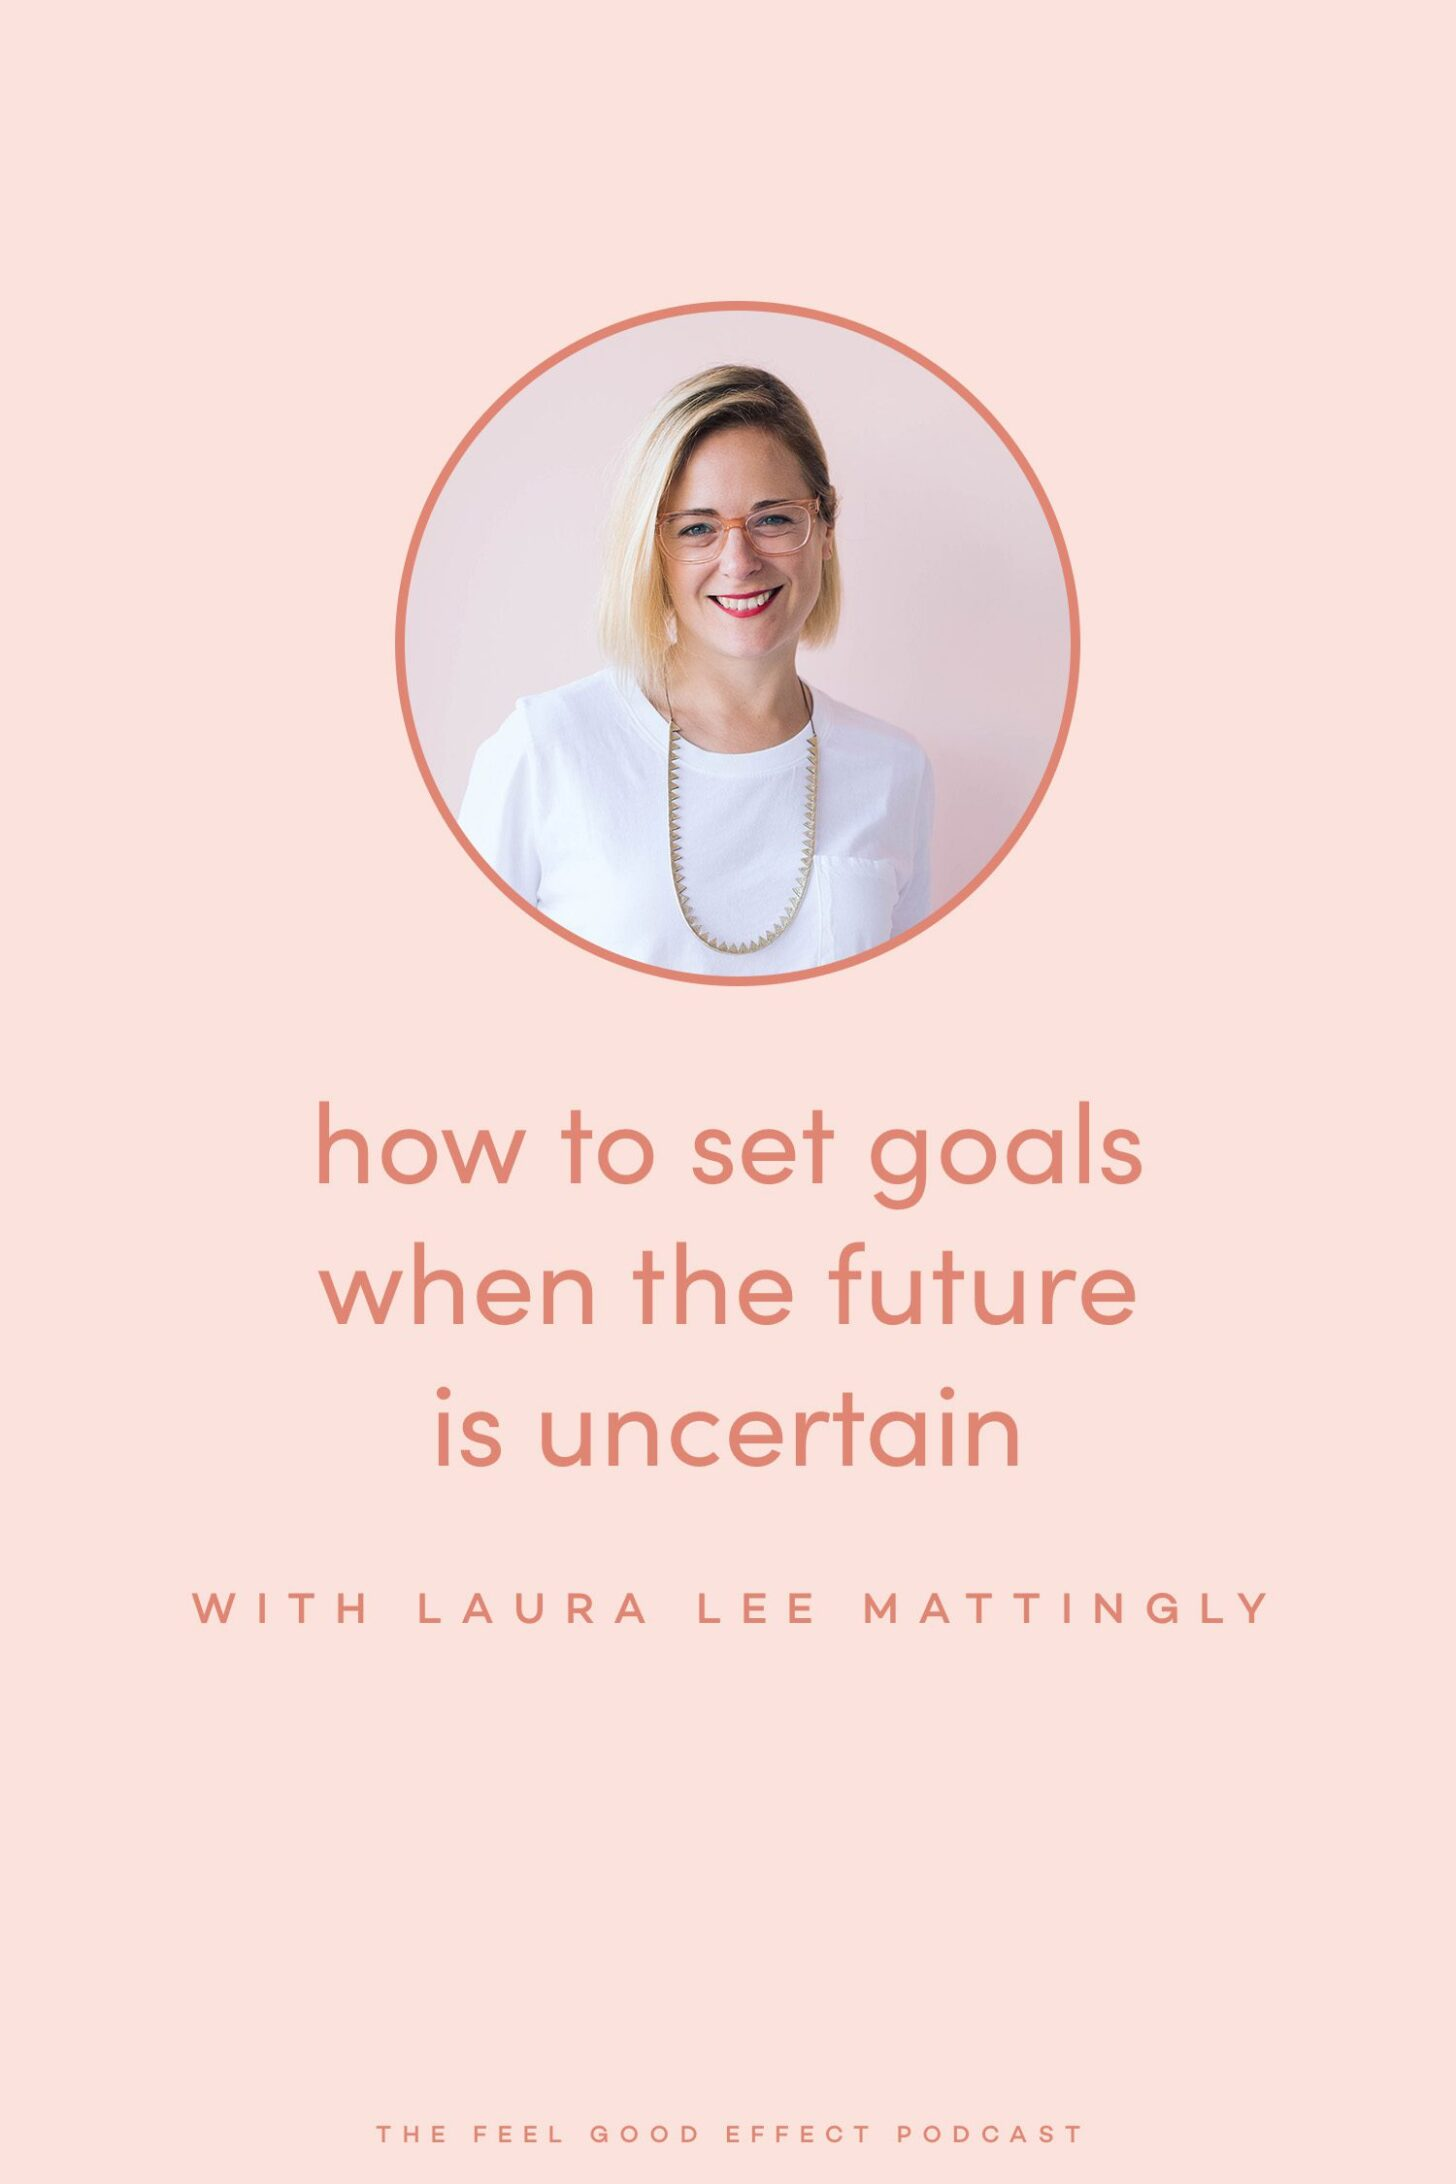 How to set goals when the future is uncertain with Laura Lee MAttingly on the Feel Good Effect Podcast #realfoodwholelife #feelgoodeffectpodcast #wellnesspodcast #goalsetting #inspiration #productivity